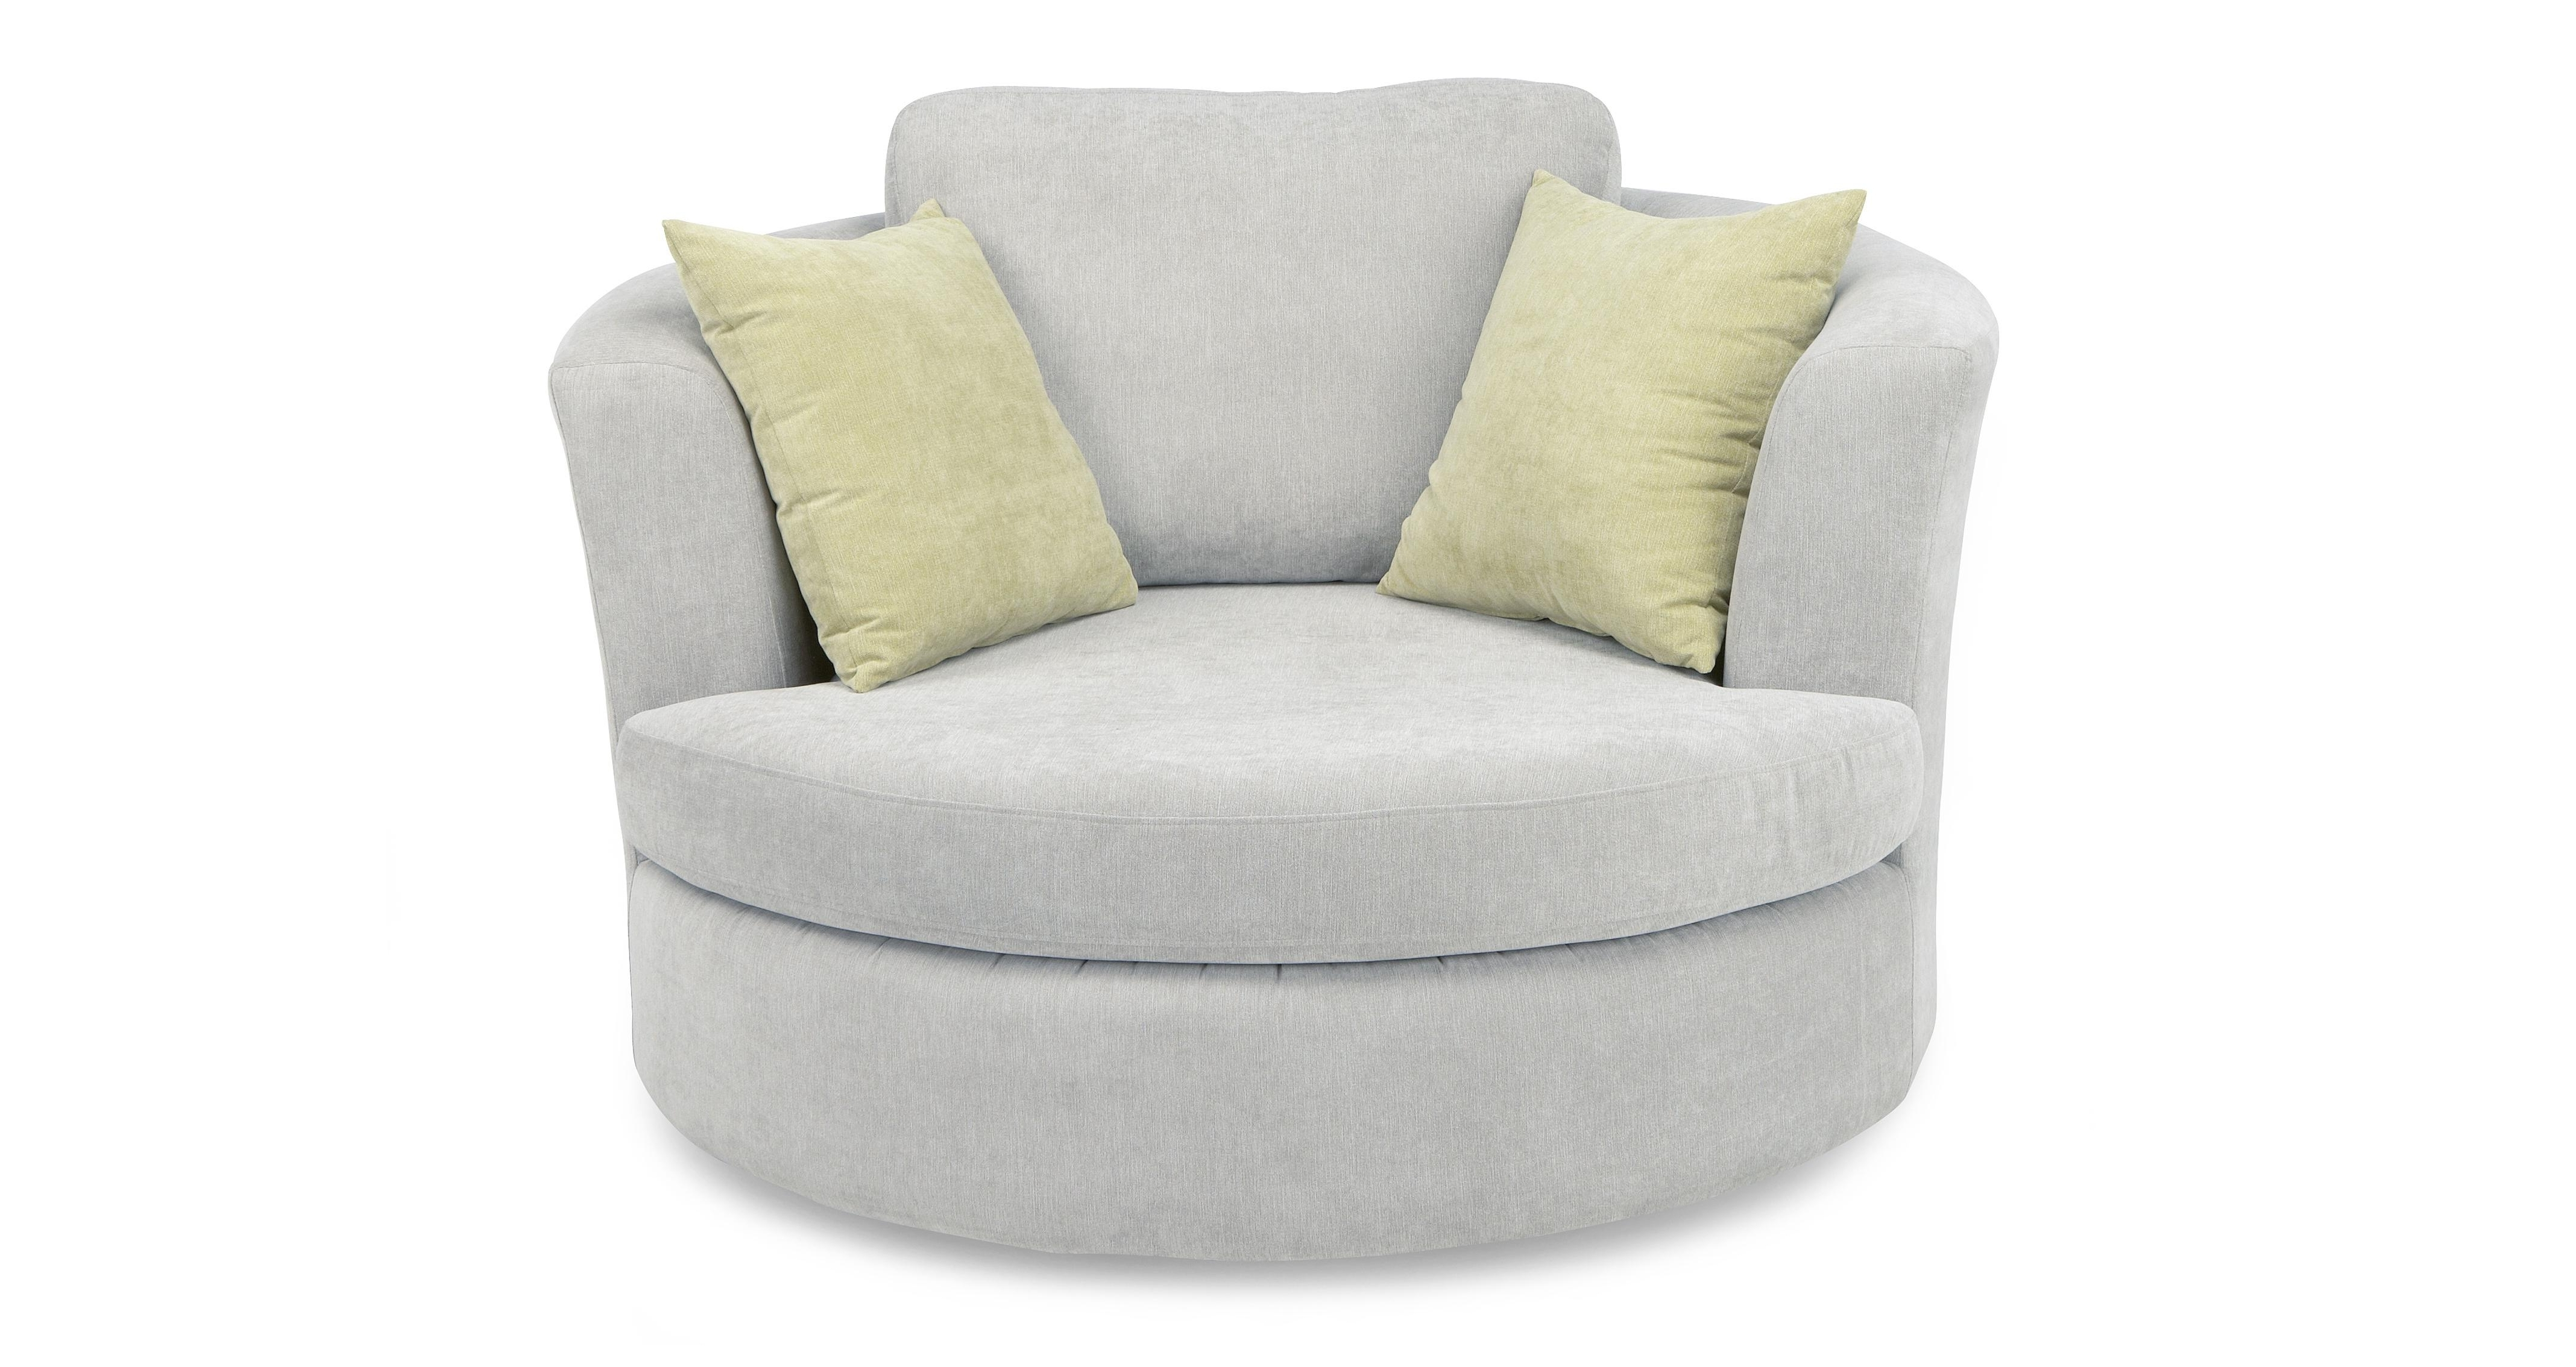 Best Home Chair Decoration Regarding Most Current Swivel Sofa Chairs (View 6 of 15)